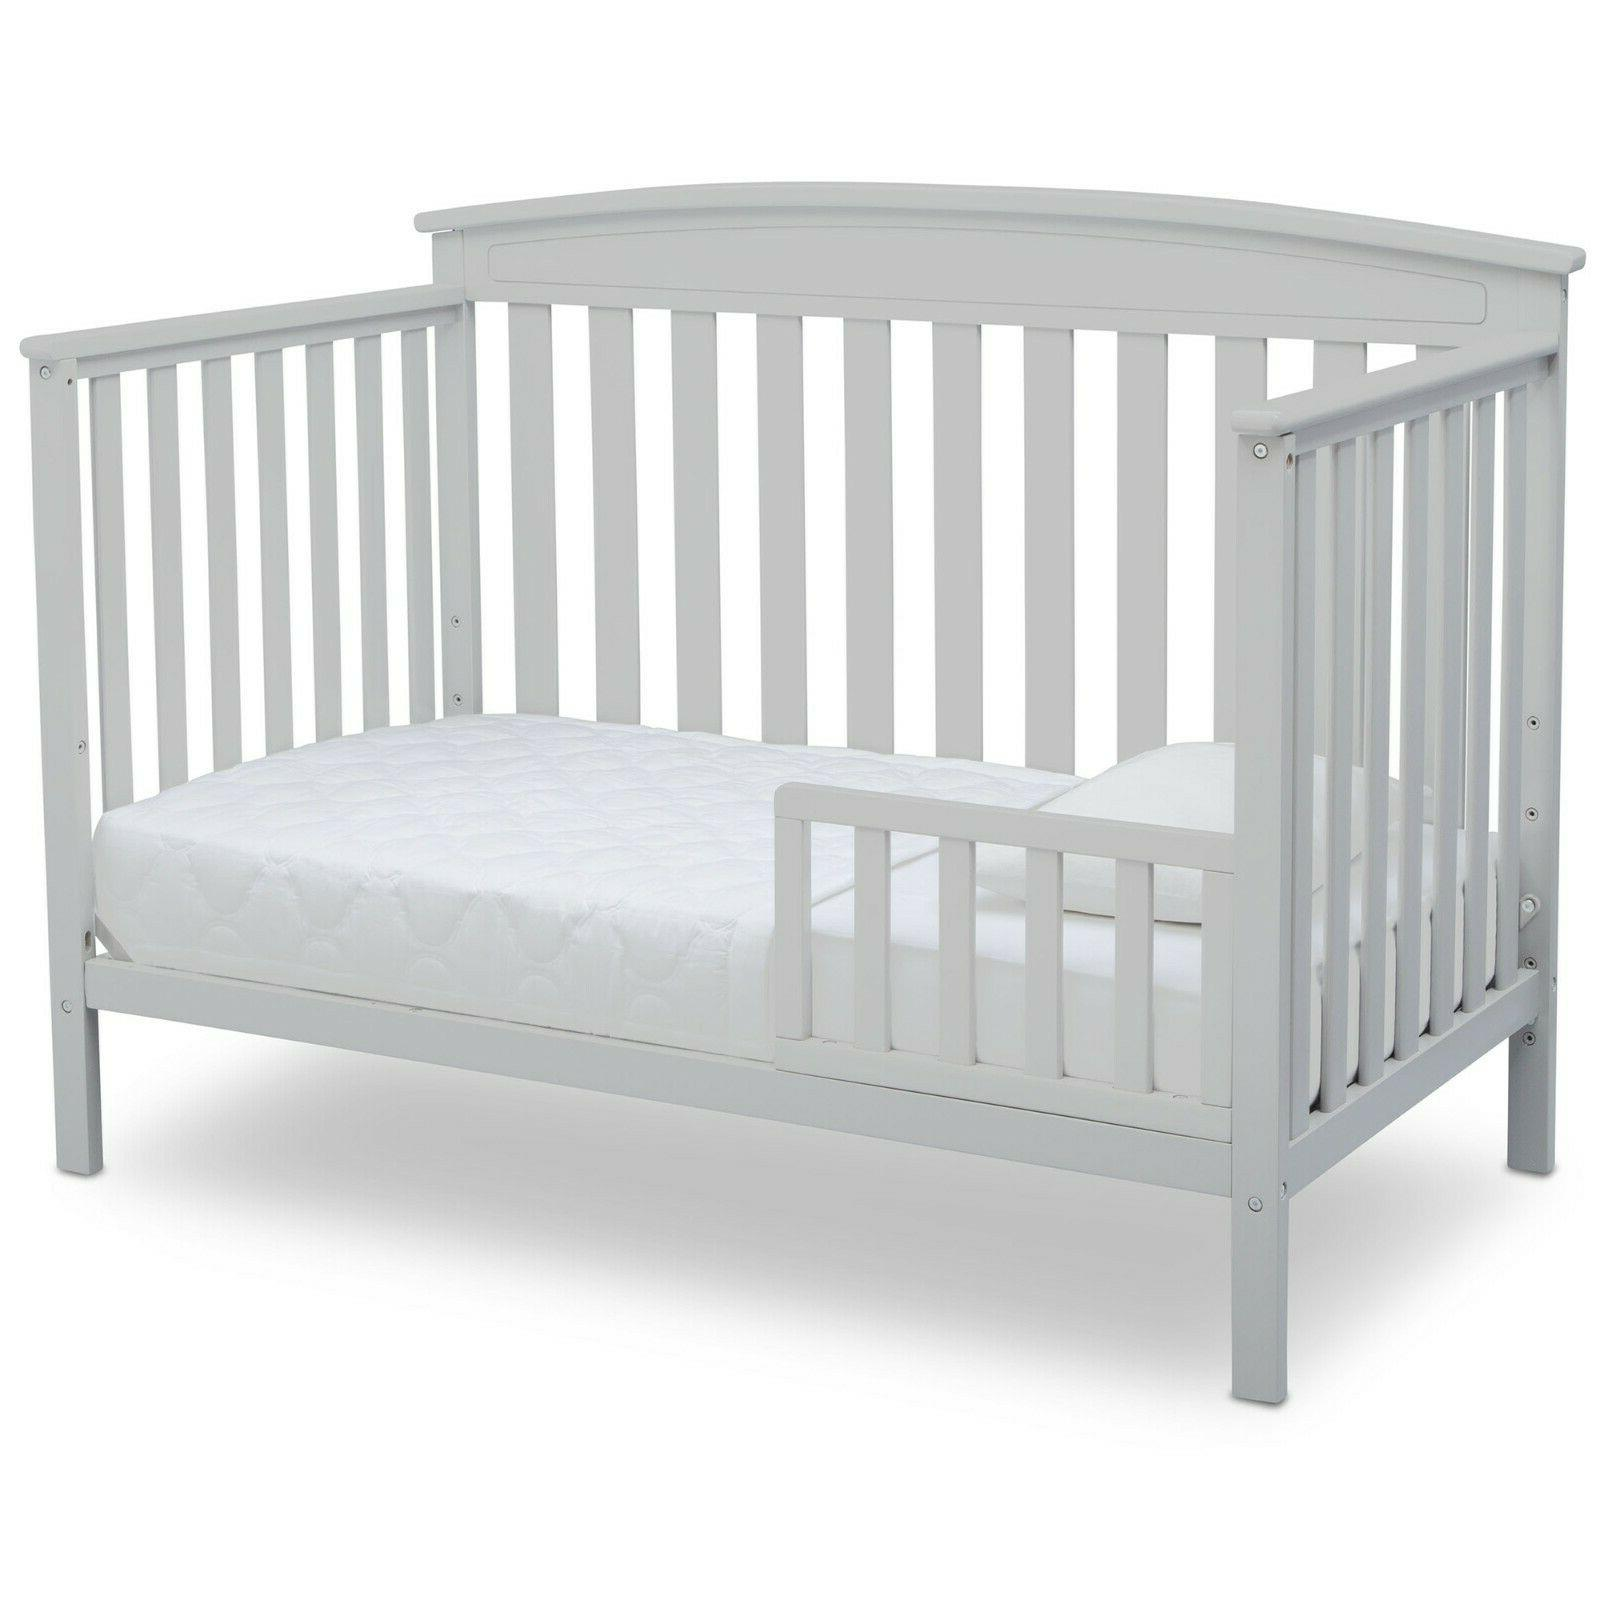 Baby Crib Full Toddler Bed Sturdy Wood